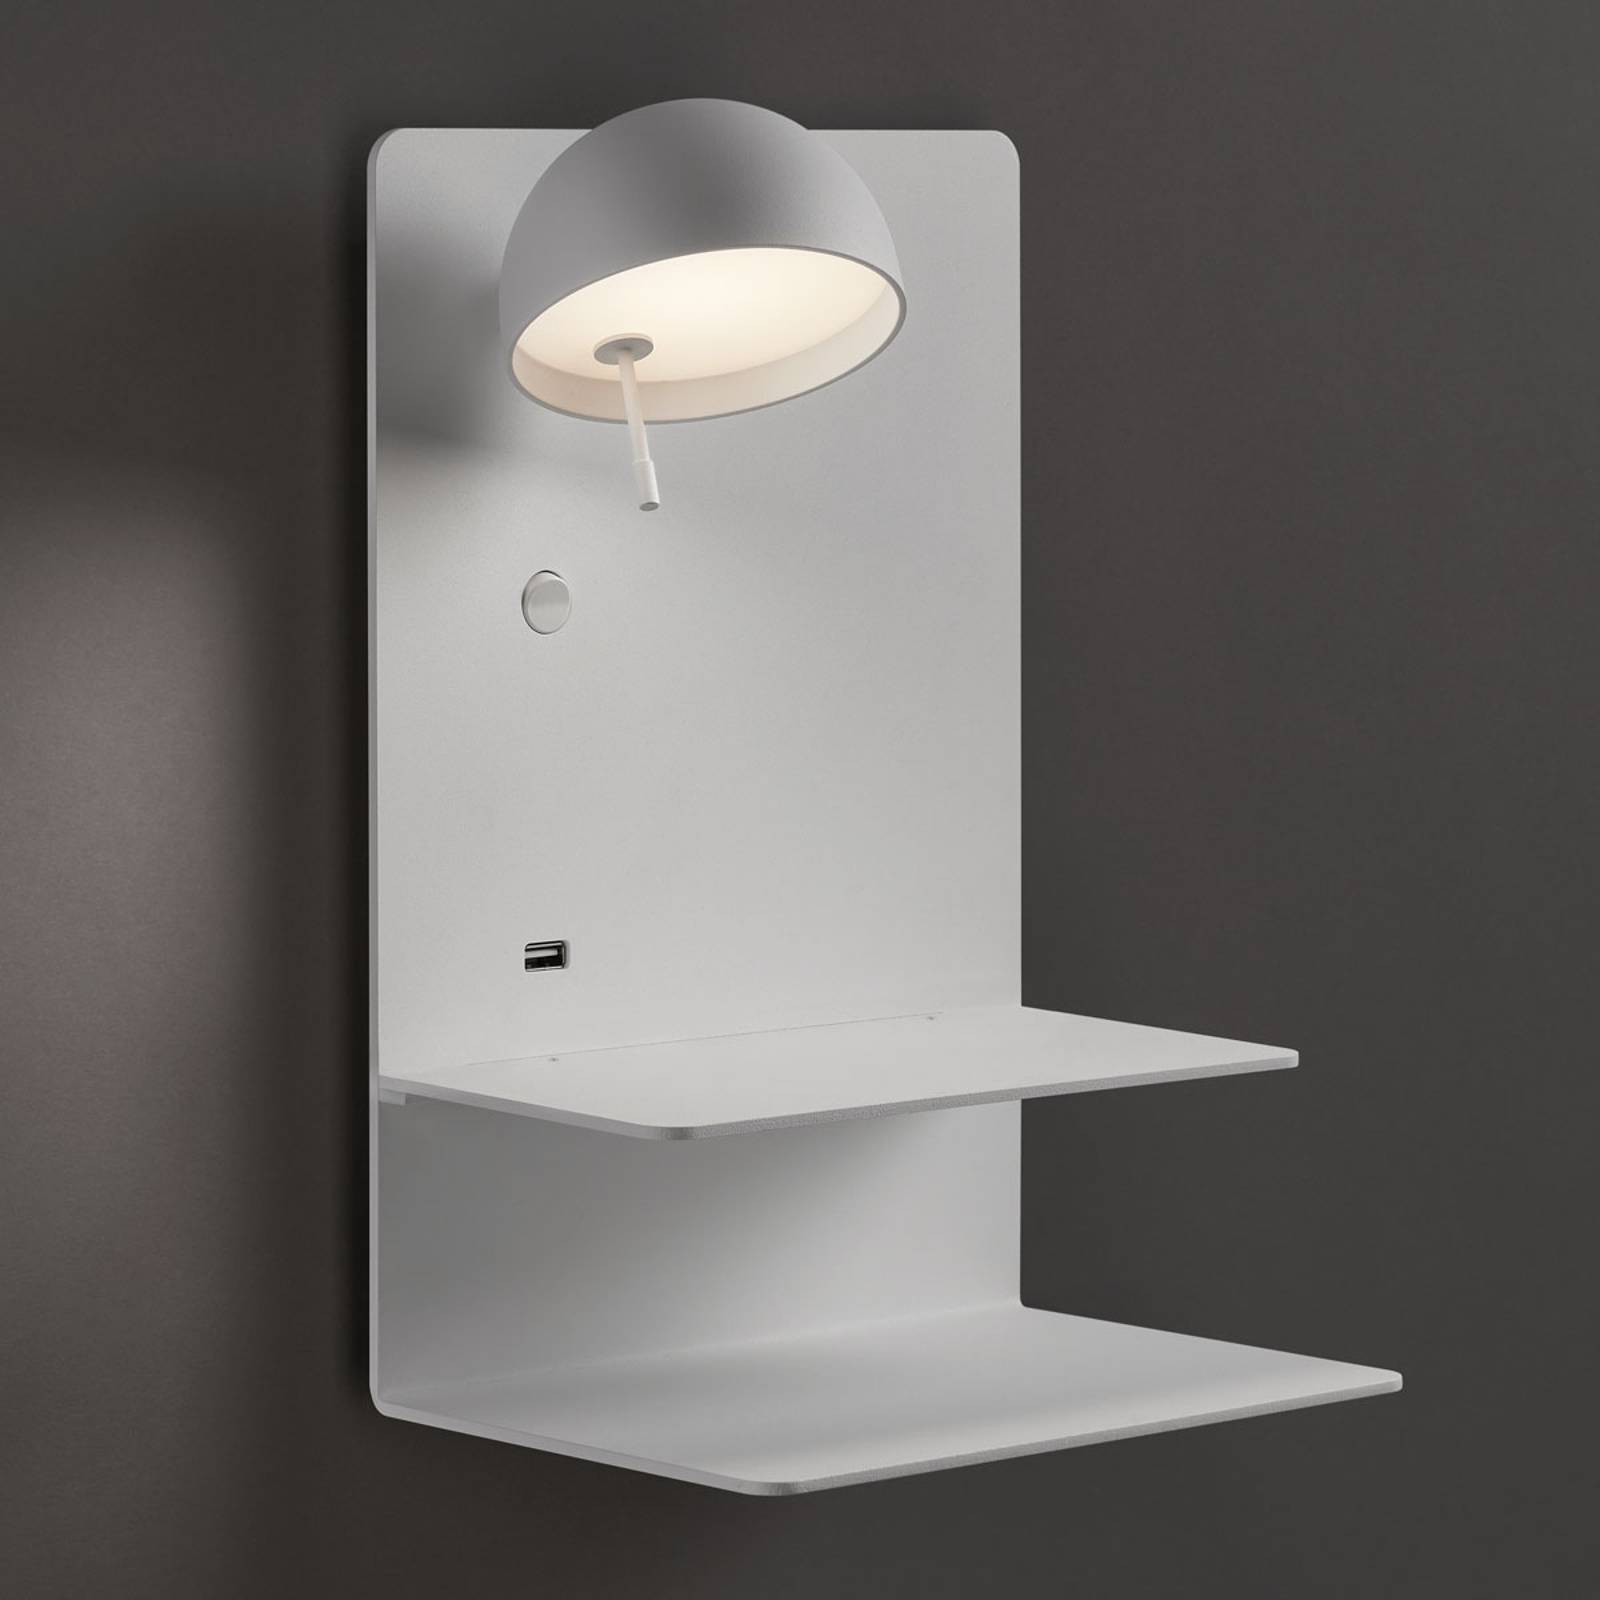 Bover Beddy A/04 LED wandlamp wit spot links